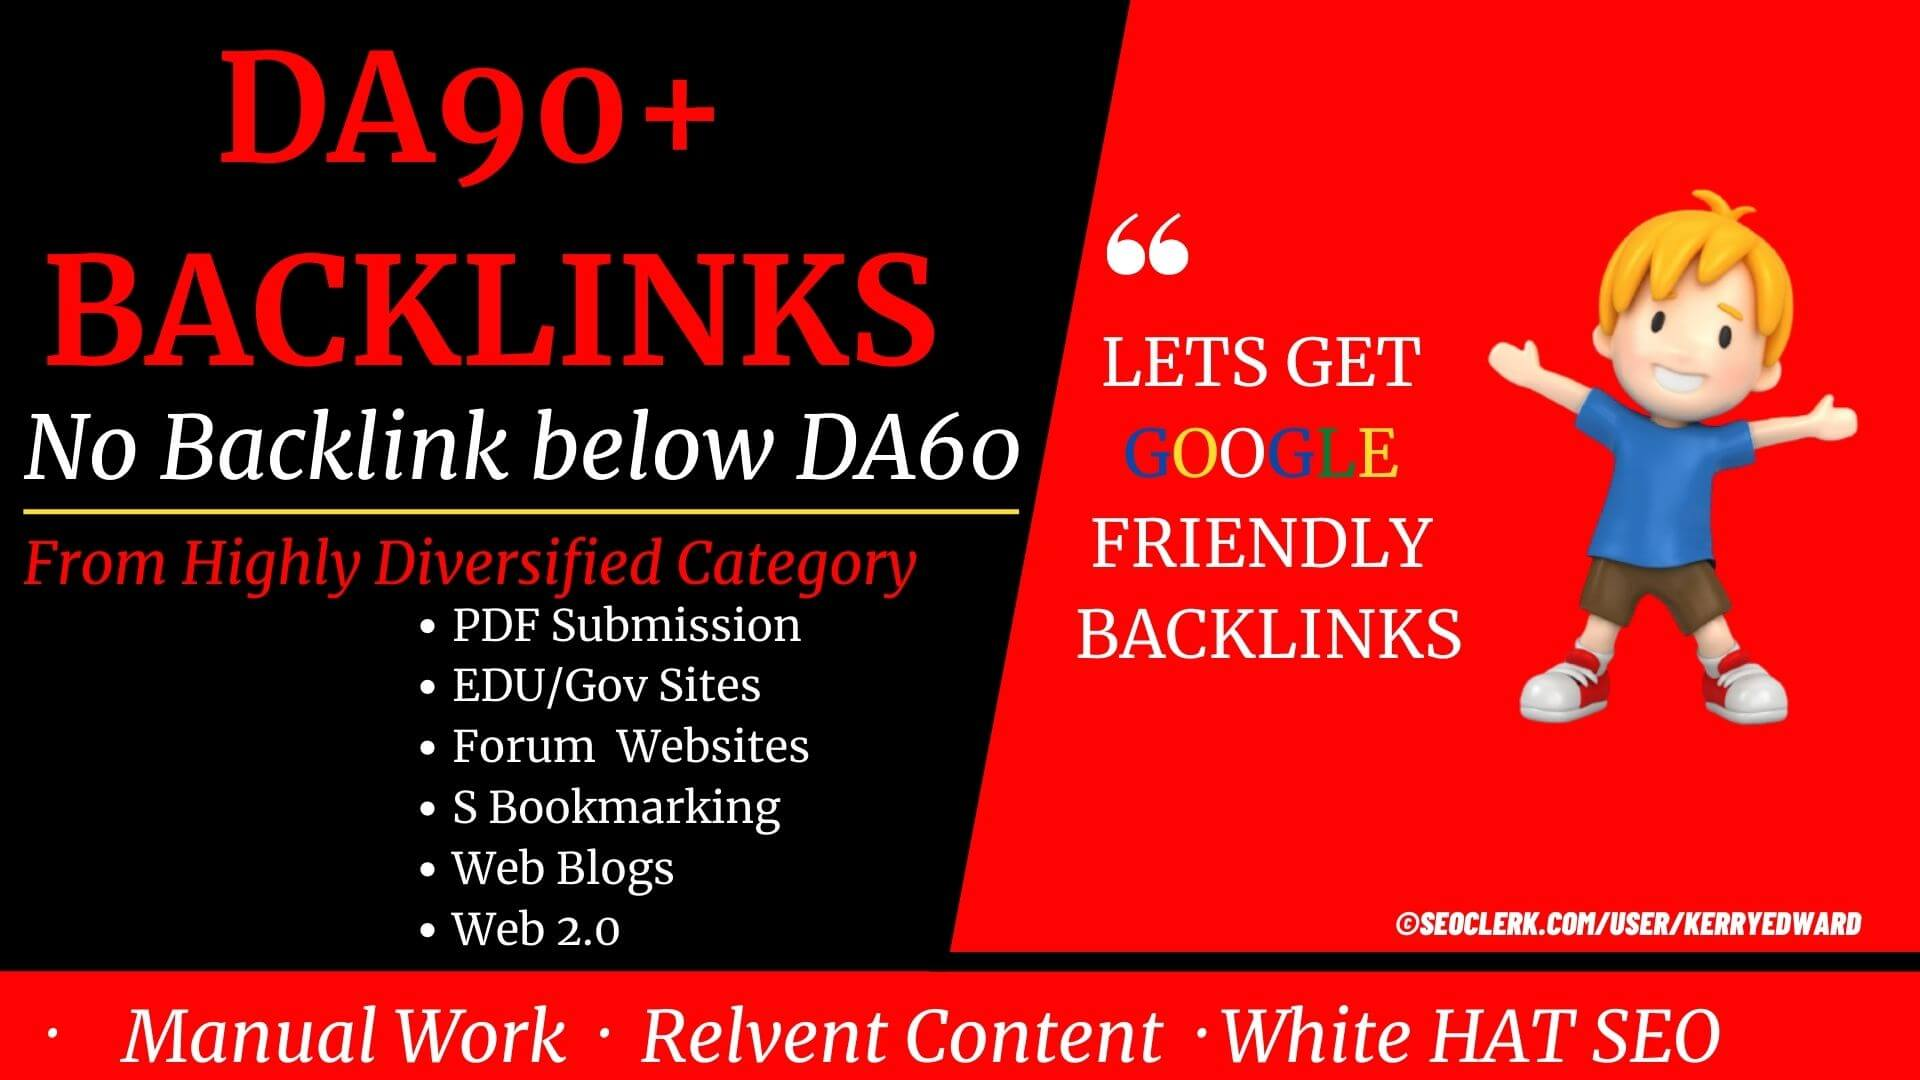 Only DA100-DA60+ Backlinks:53+ premium DA60+ Backlinks to Rank first on Google or any Search Engine